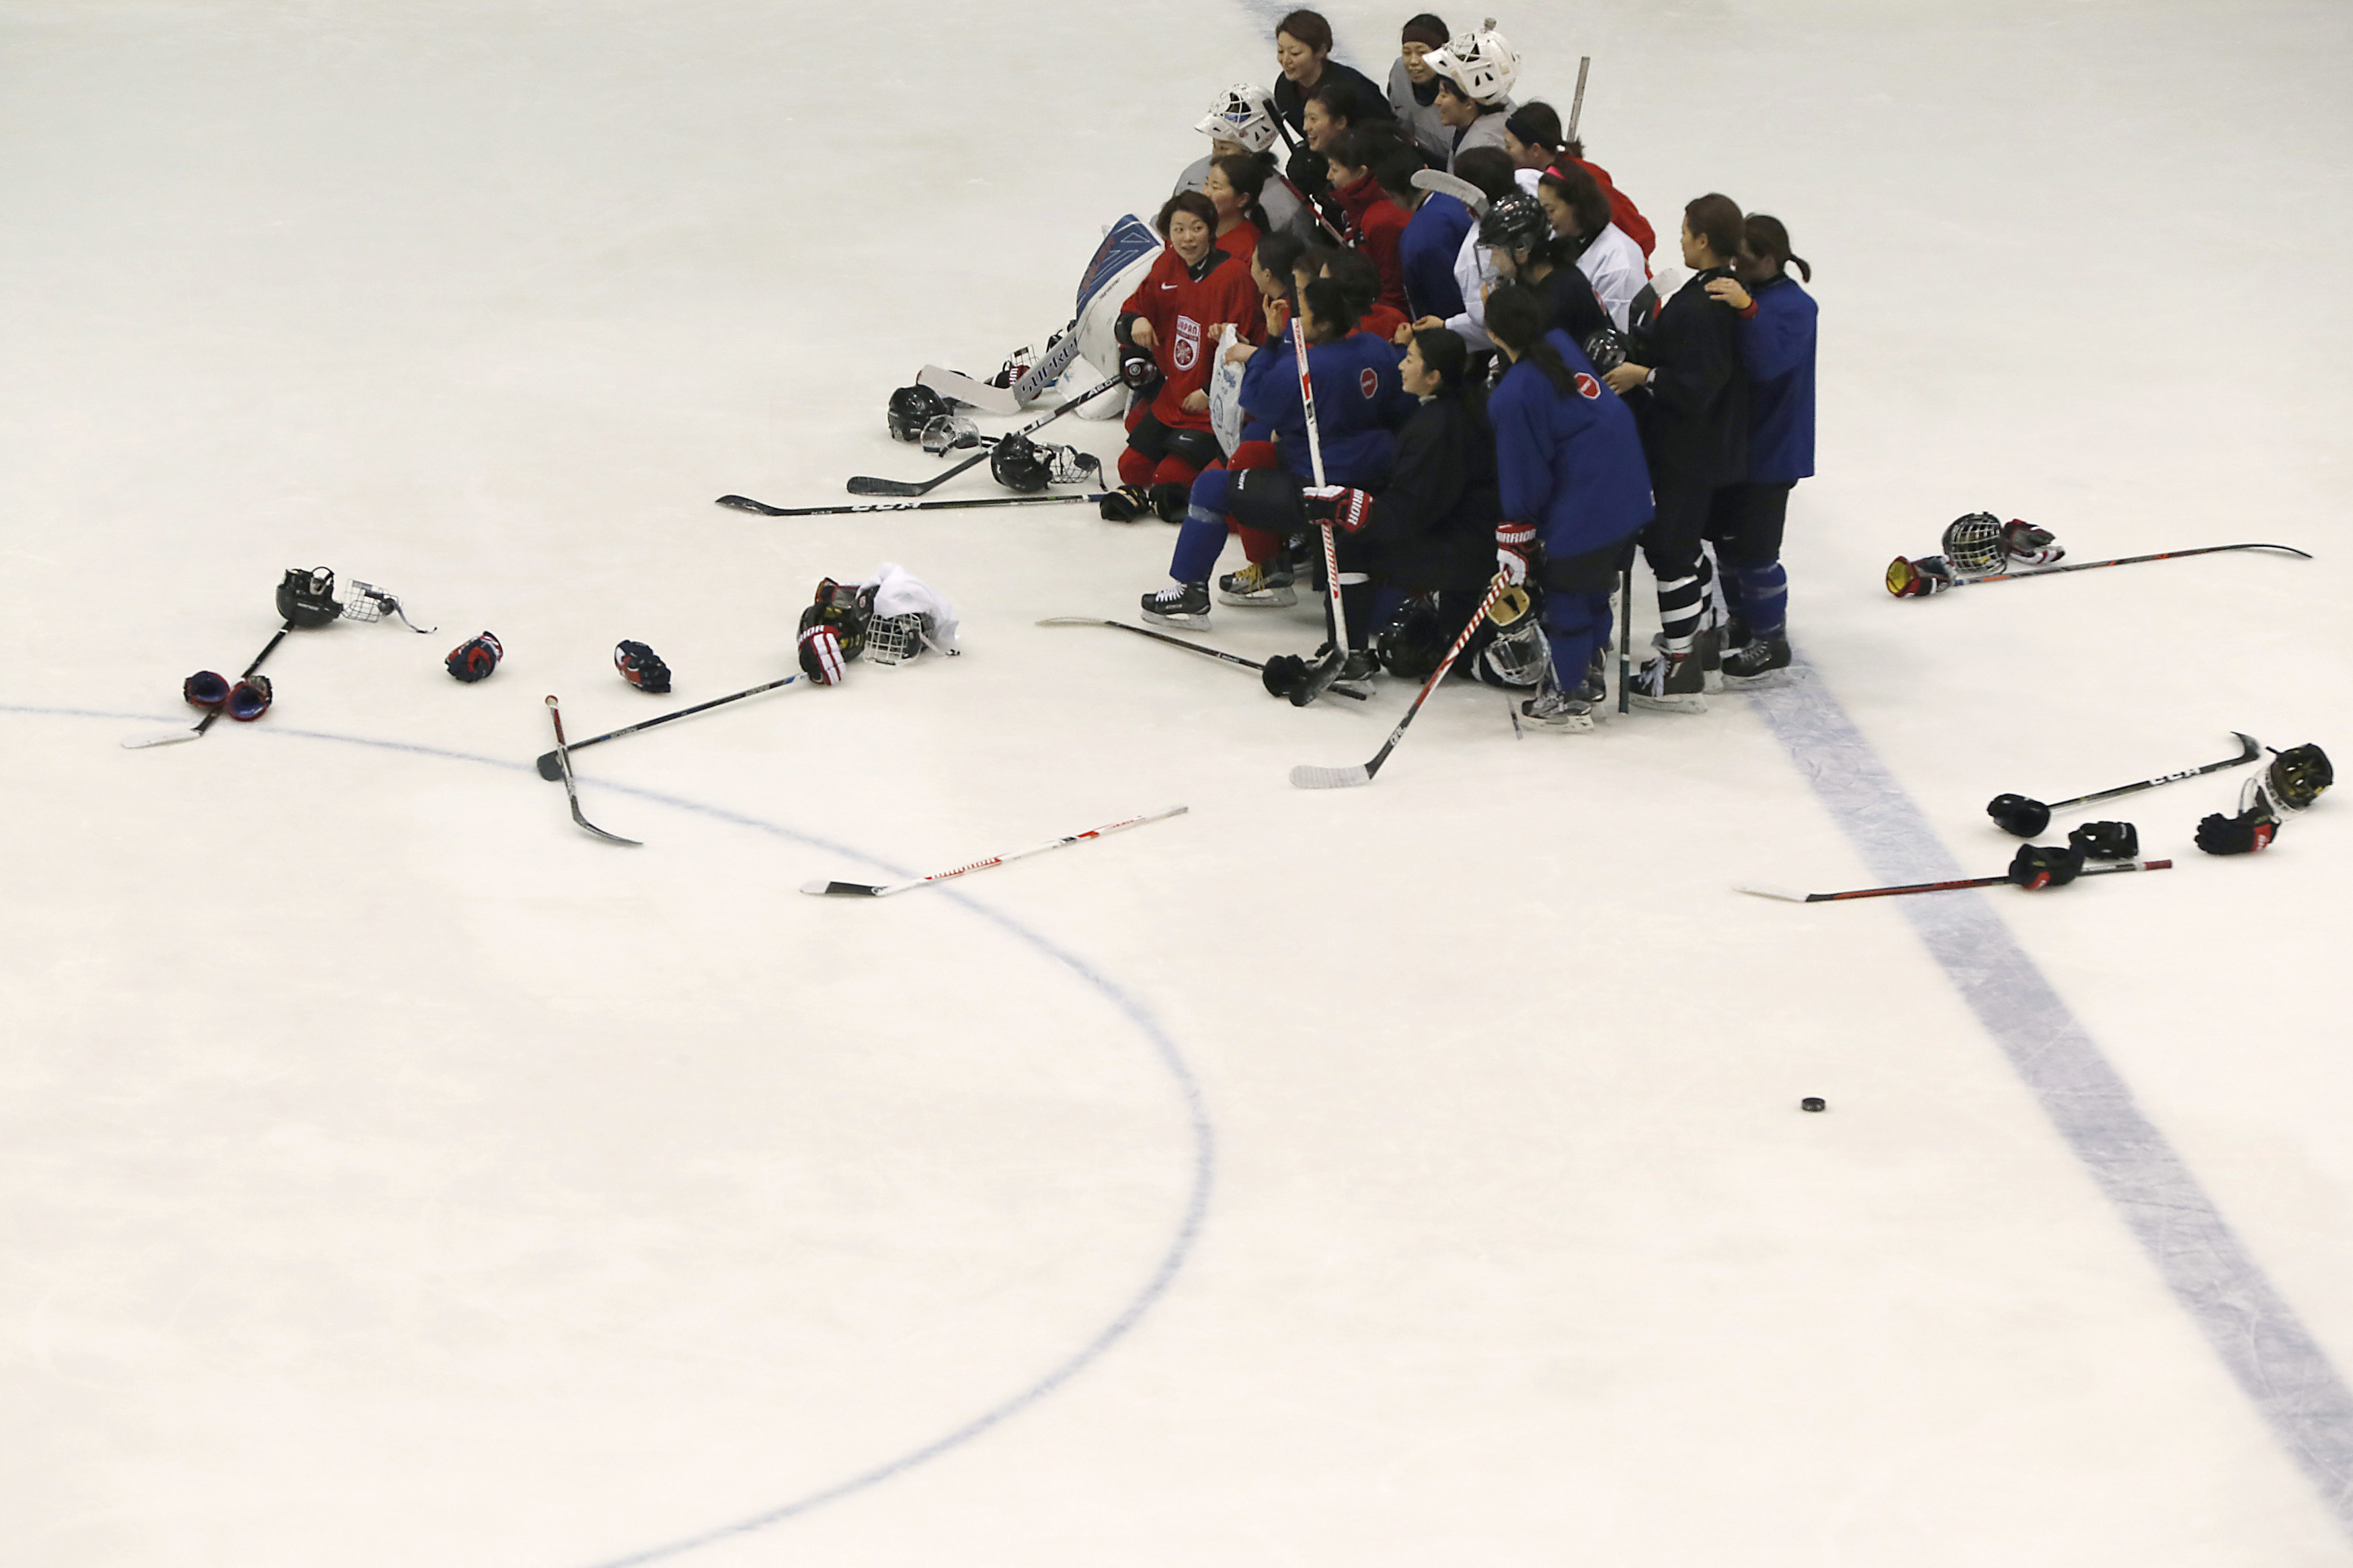 Members of the Japanese women's national ice hockey team pose for their group photo after their practice session for the Asian Winter Games at Tsukisamu Gymnasium in Sapporo, on Japan's northern island of Hokkaido, Friday, Feb. 17, 2017. With the Winter O